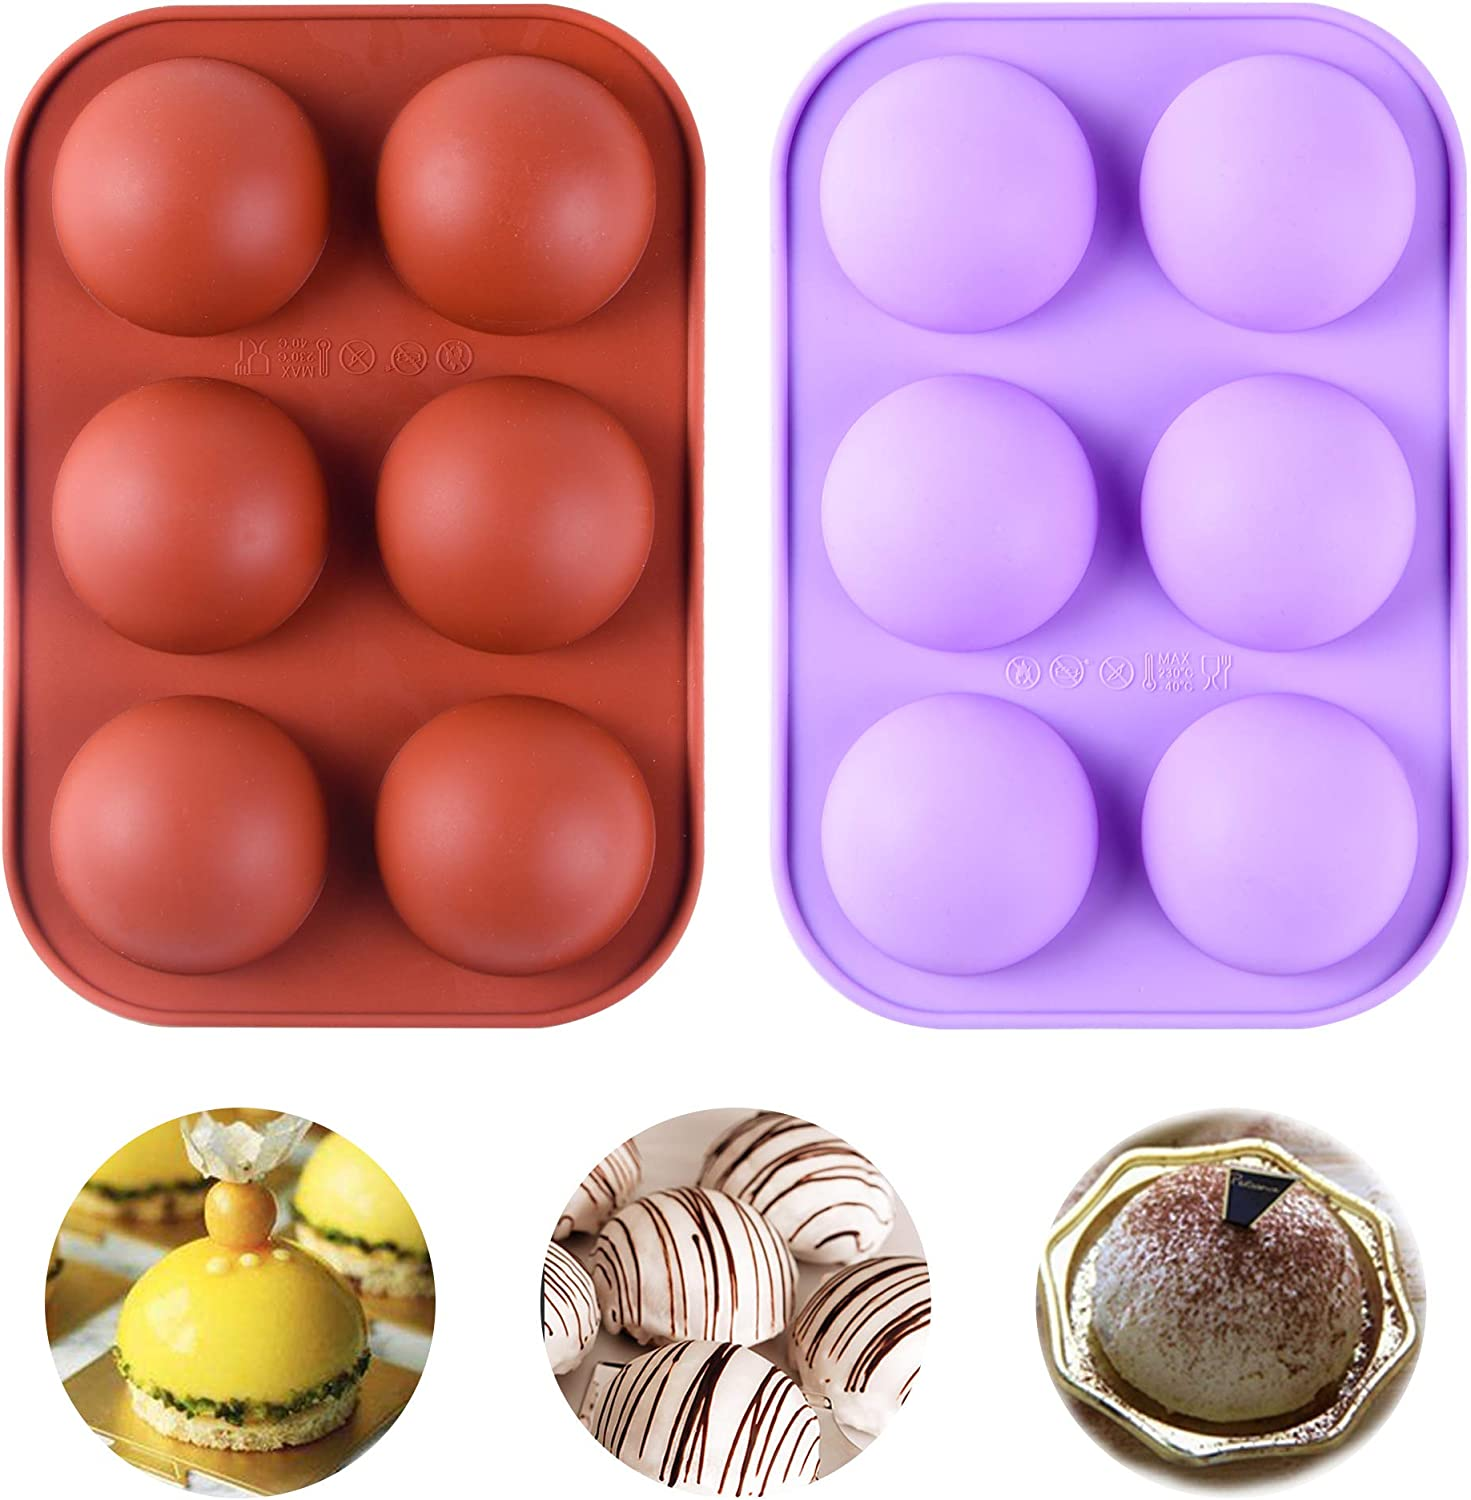 2 Pcs 6 Holes silicone molds Bomb Limited time cheap sale chocolate Chocolate Hot for Ranking TOP1